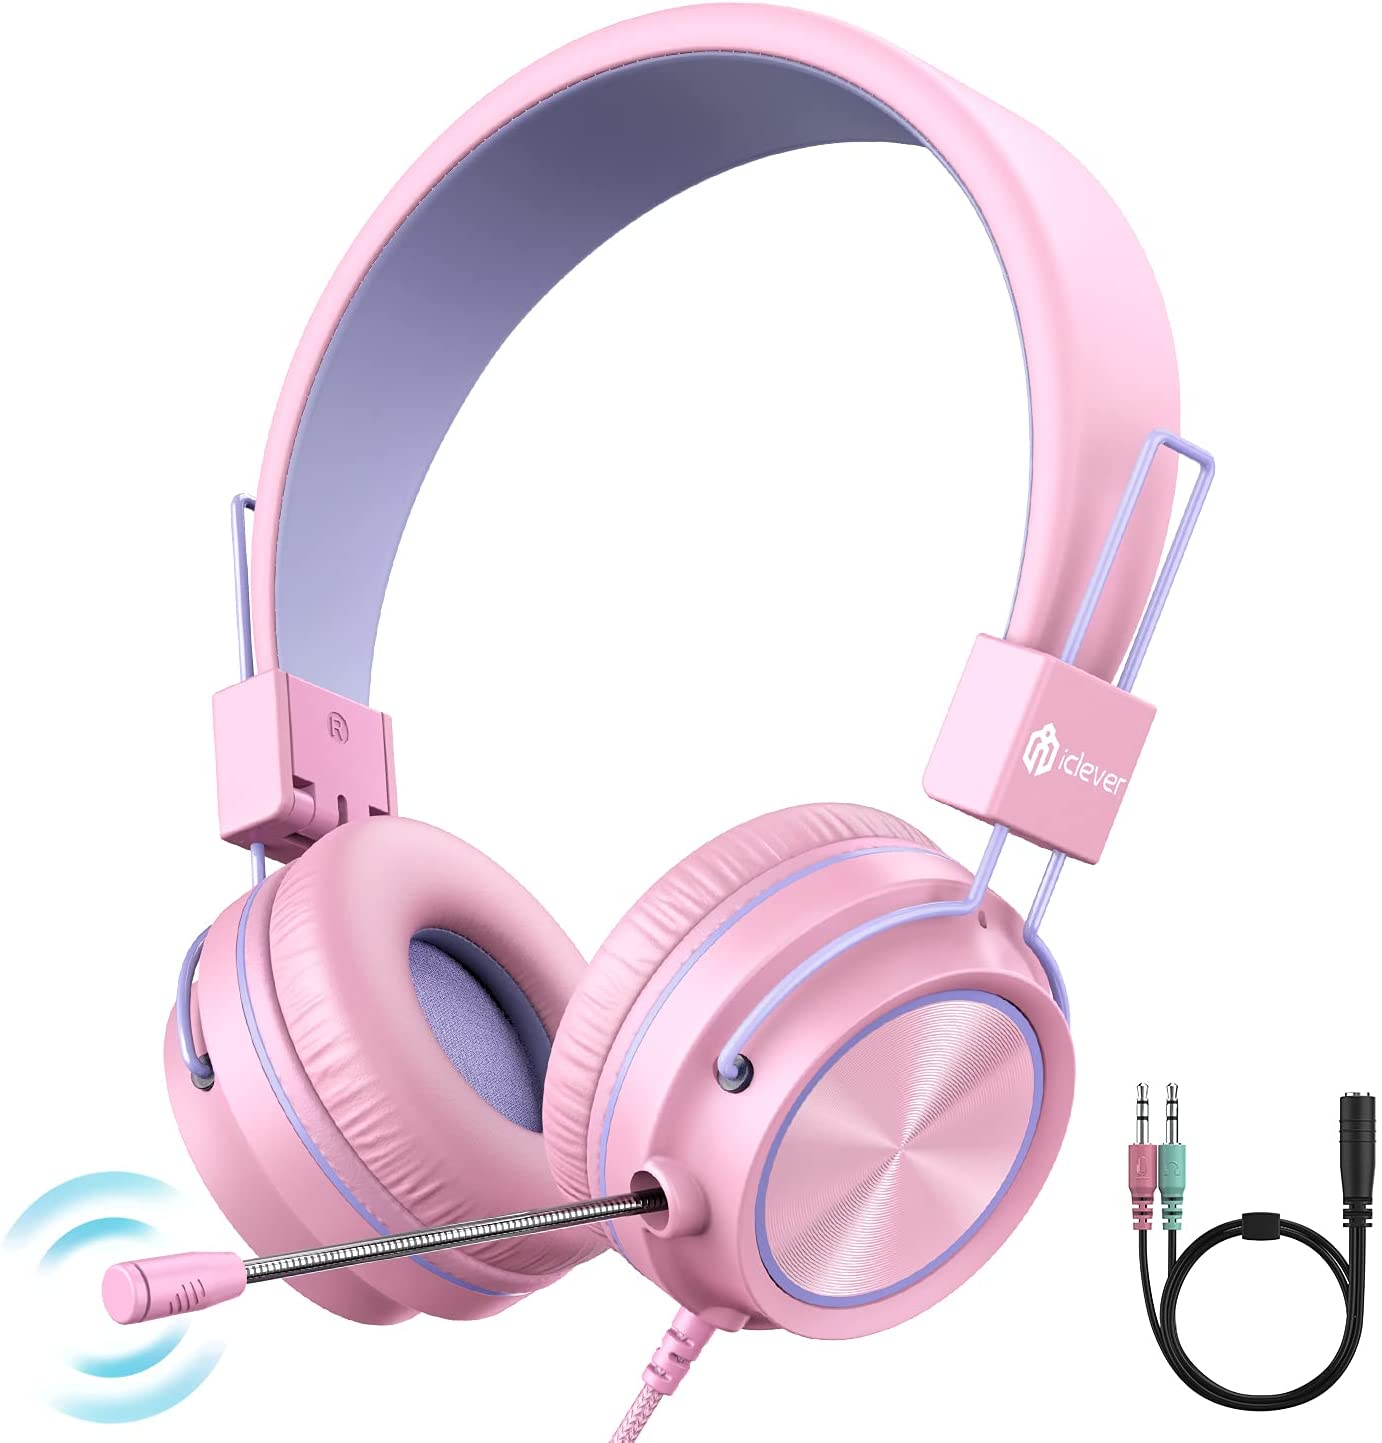 iClever HS21 Kids Headphones with Microphone for School- Rotatable Extendable Mic - 94 dB Volume-Safe Headphones for Kids, Wired Foldable Kids Gaming Headset for PS4/Xbox One/Switch/PC/Tablet, Pink